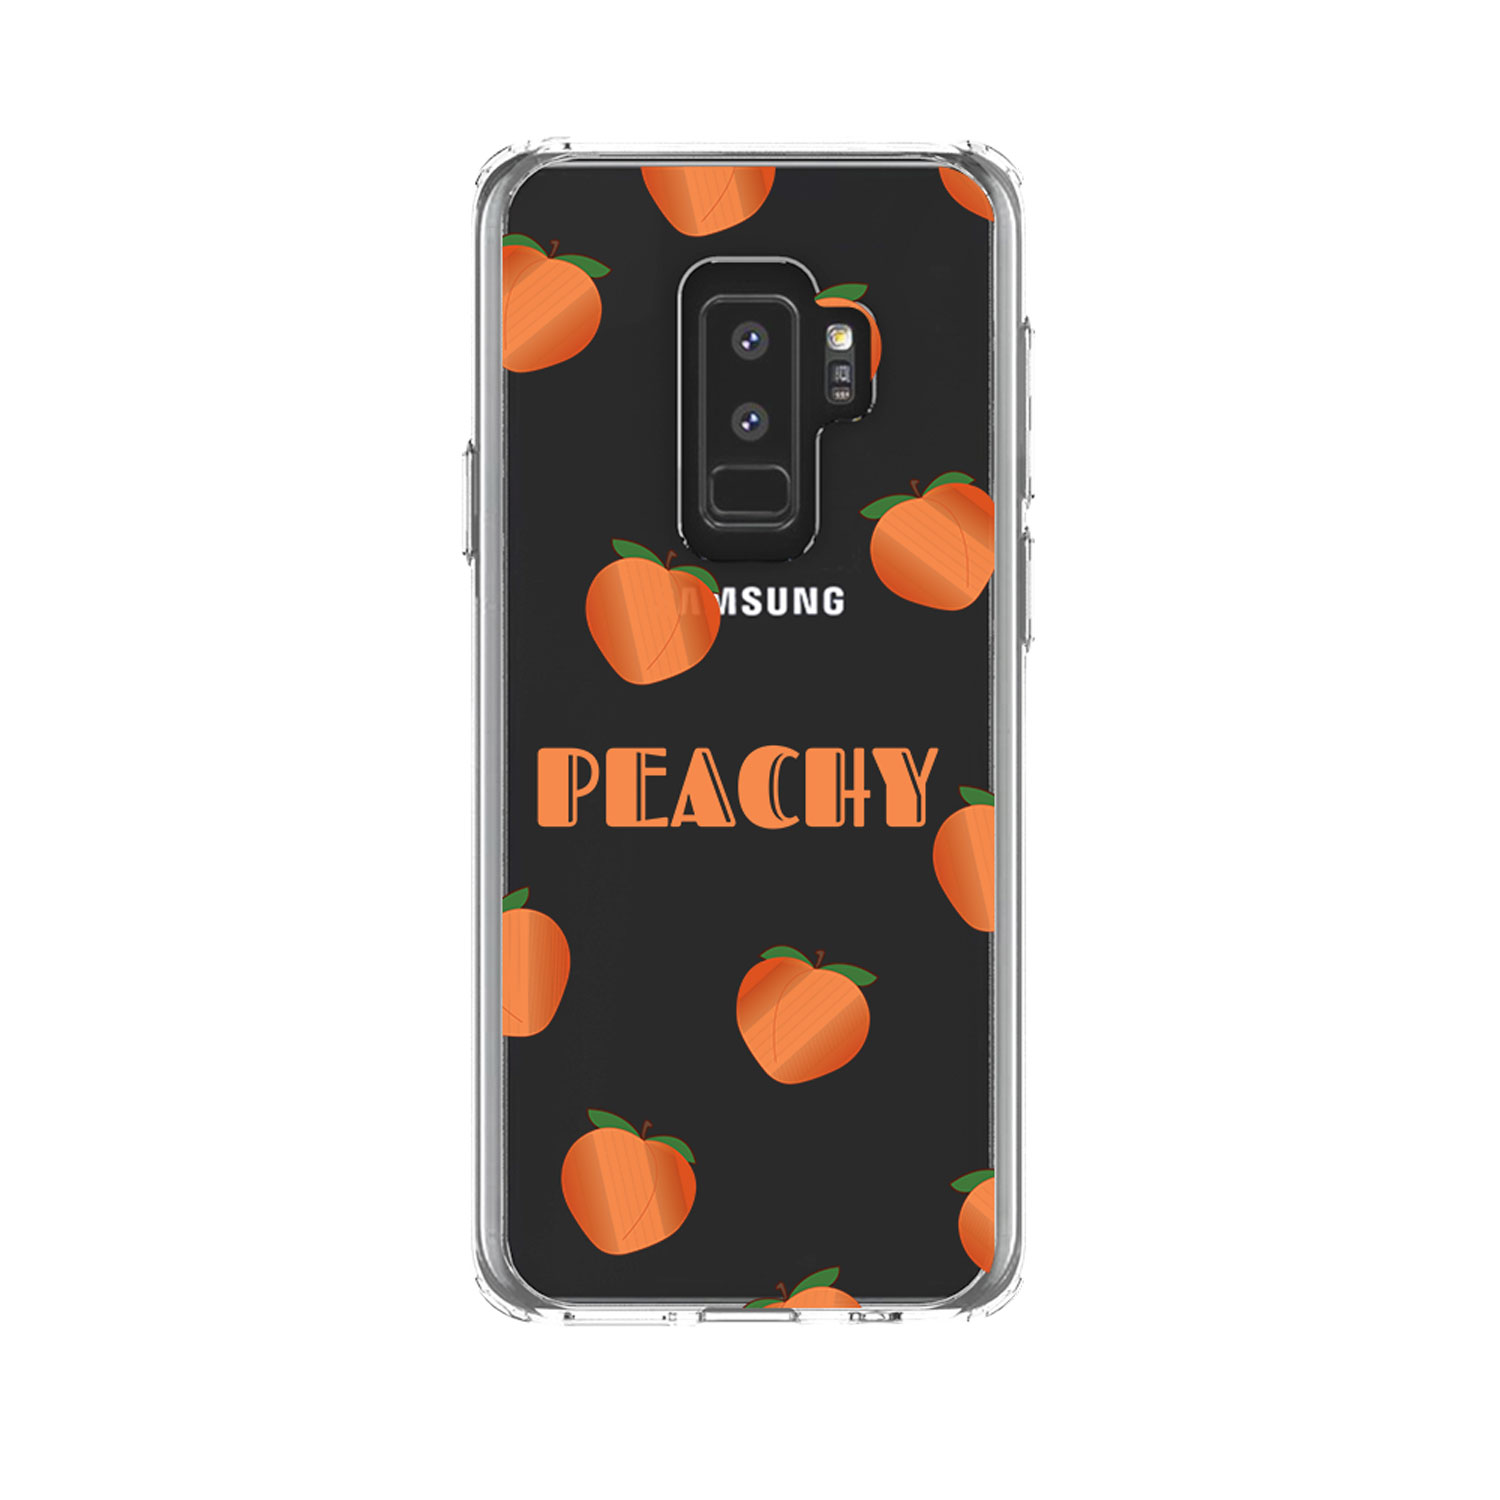 "DistinctInk Clear Shockproof Hybrid Case for Samsung Galaxy S9+ PLUS (6.2"" Screen) - TPU Bumper, Acrylic Back, Tempered Glass Screen Protector - Peachy - Peach Emoji"